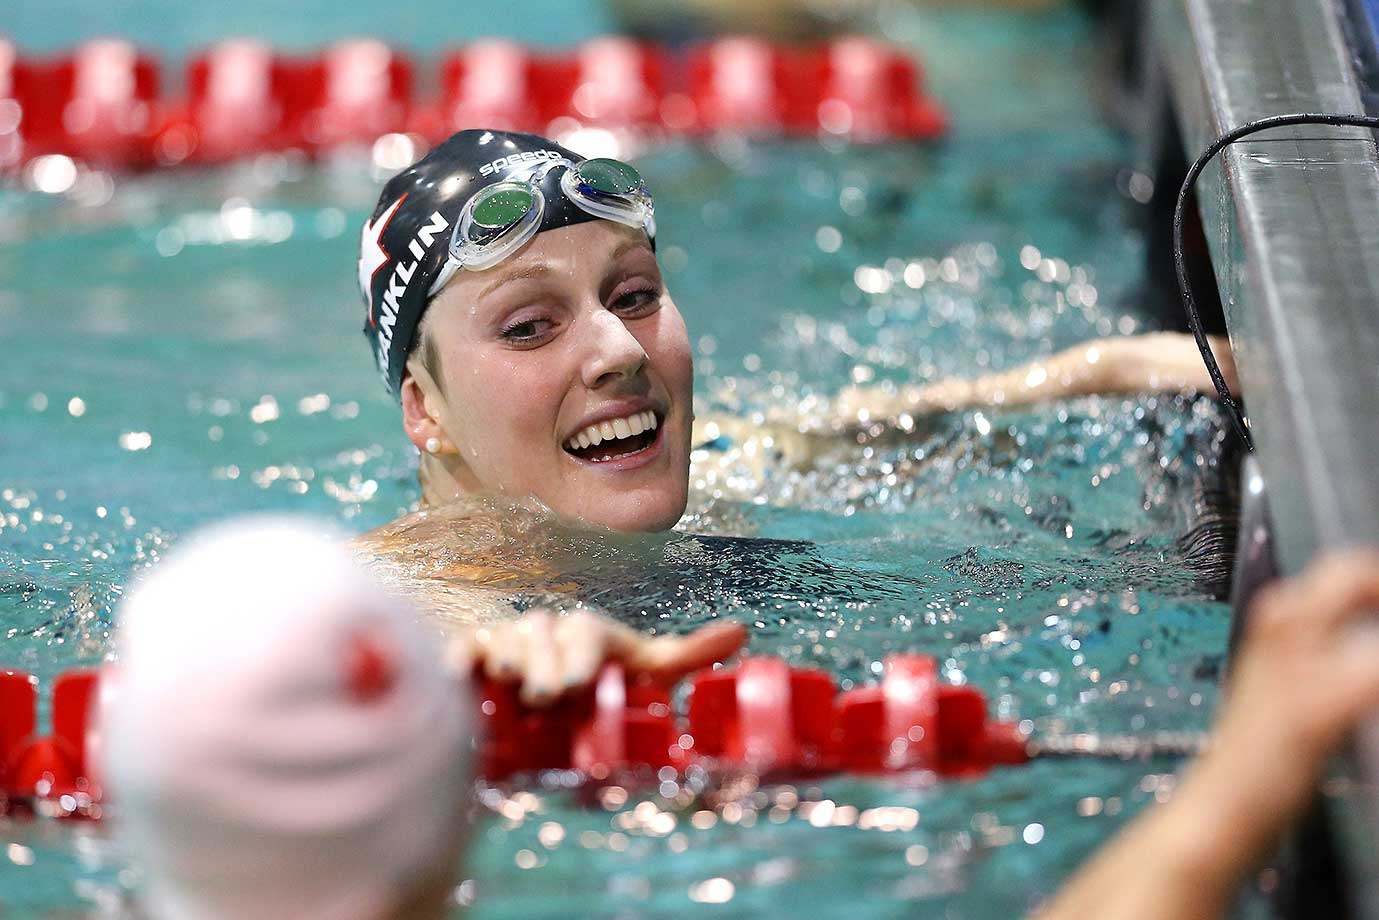 Missy Franklin smiles after the 50 LC meter freestyle final at the Arena Pro Swim Series in Orlando.